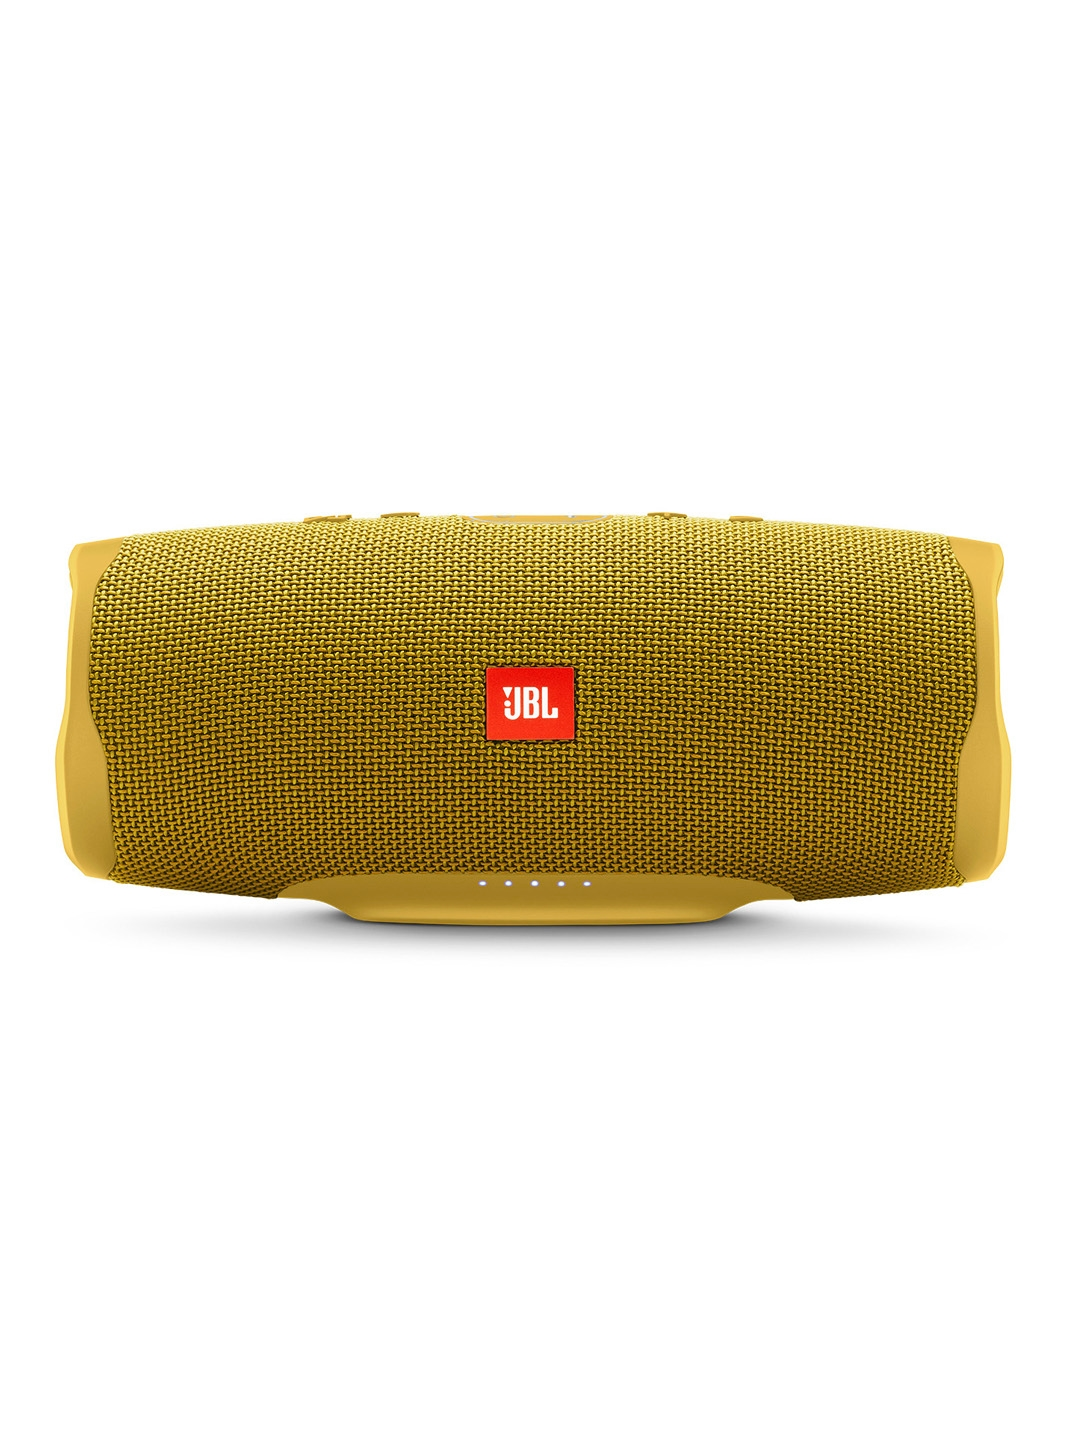 JBL Unisex Yellow Charge 4 Powerful Portable Speaker with Built in Powerbank